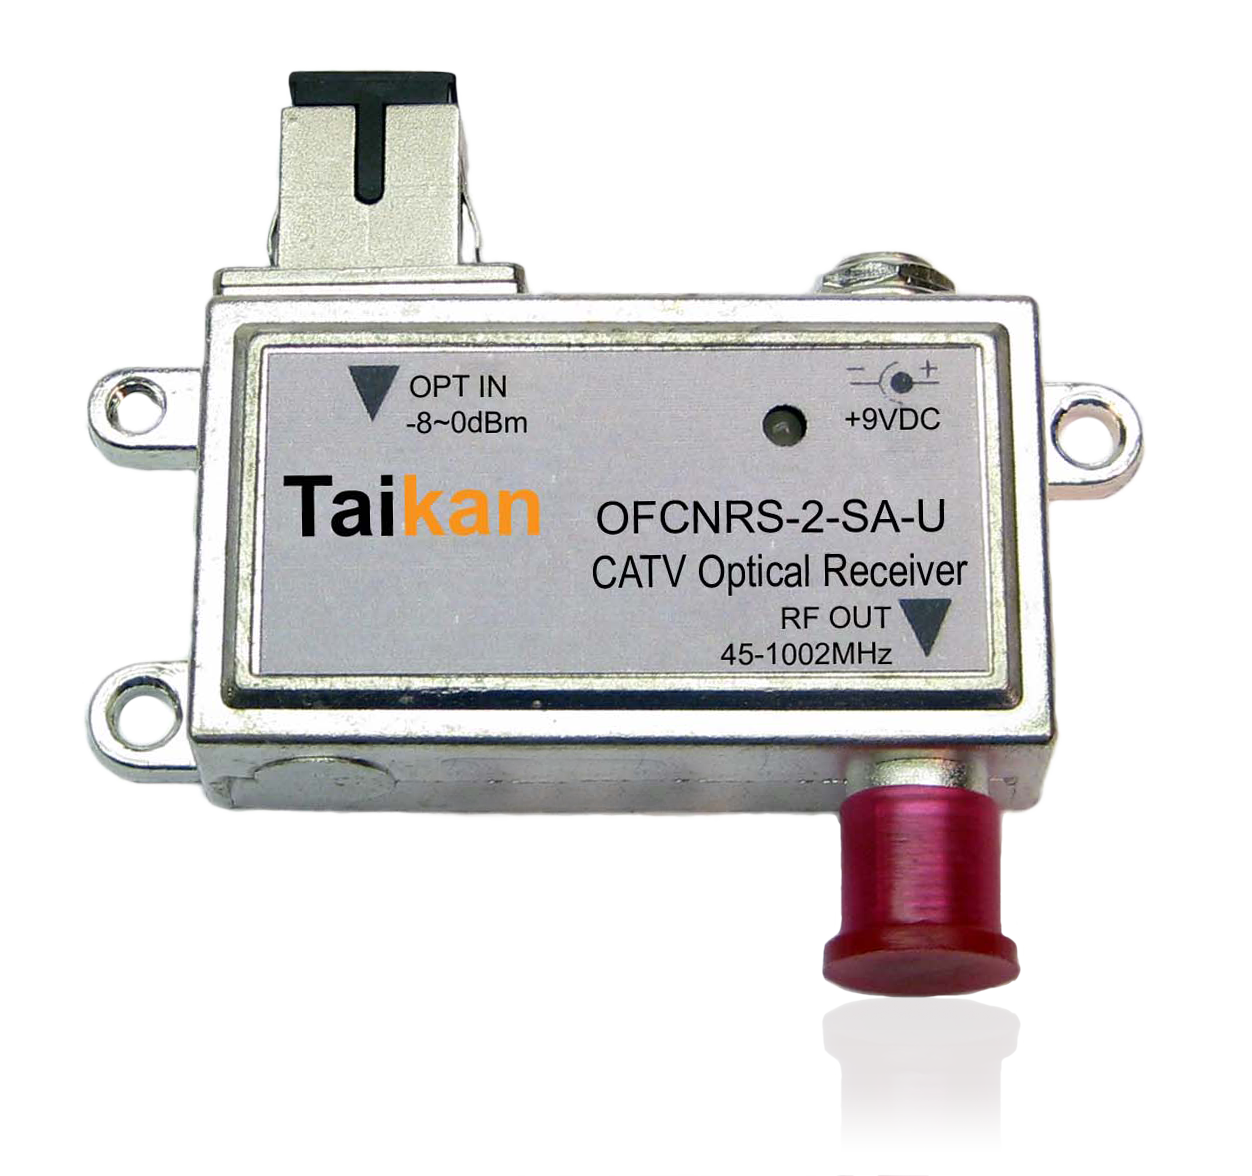 OFCNRS Receive only optical node fiber hfc taikan scte for network infrastructure equipment and hardware